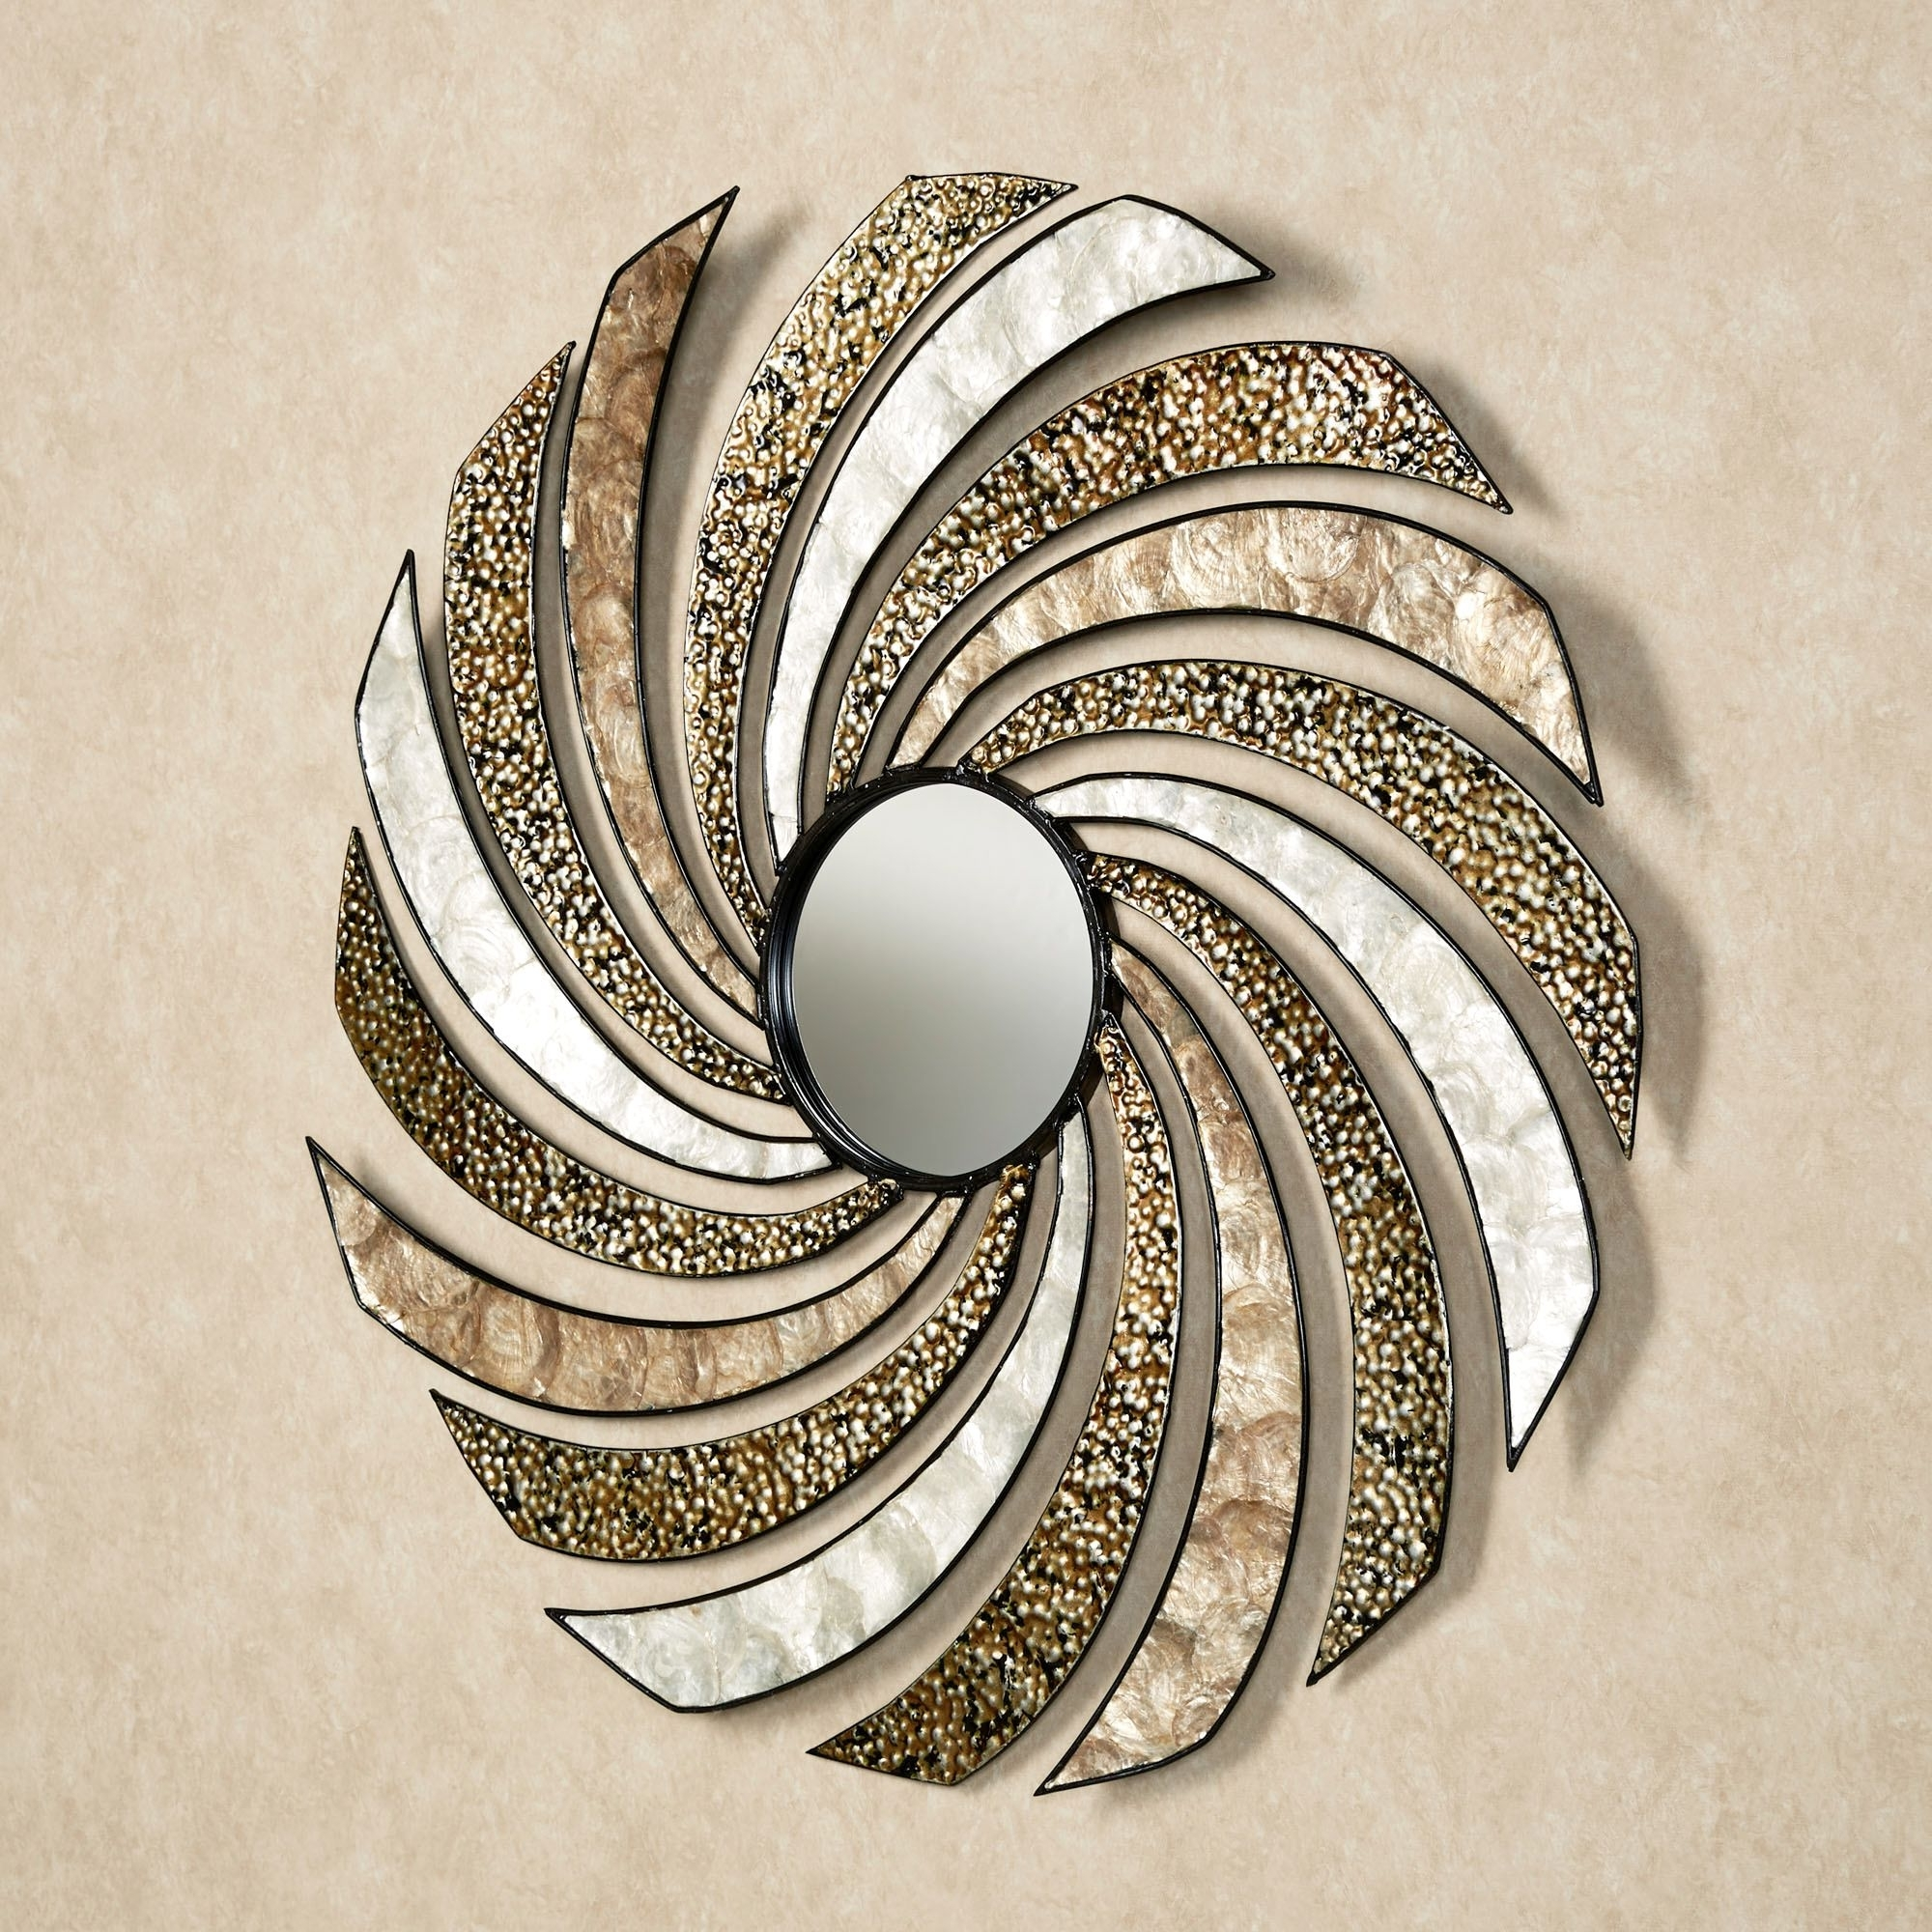 Wall Art Decor: Pasquale Swirl Mirrored Wall Art Metal Spinning In Preferred Swirl Metal Wall Art (View 15 of 15)